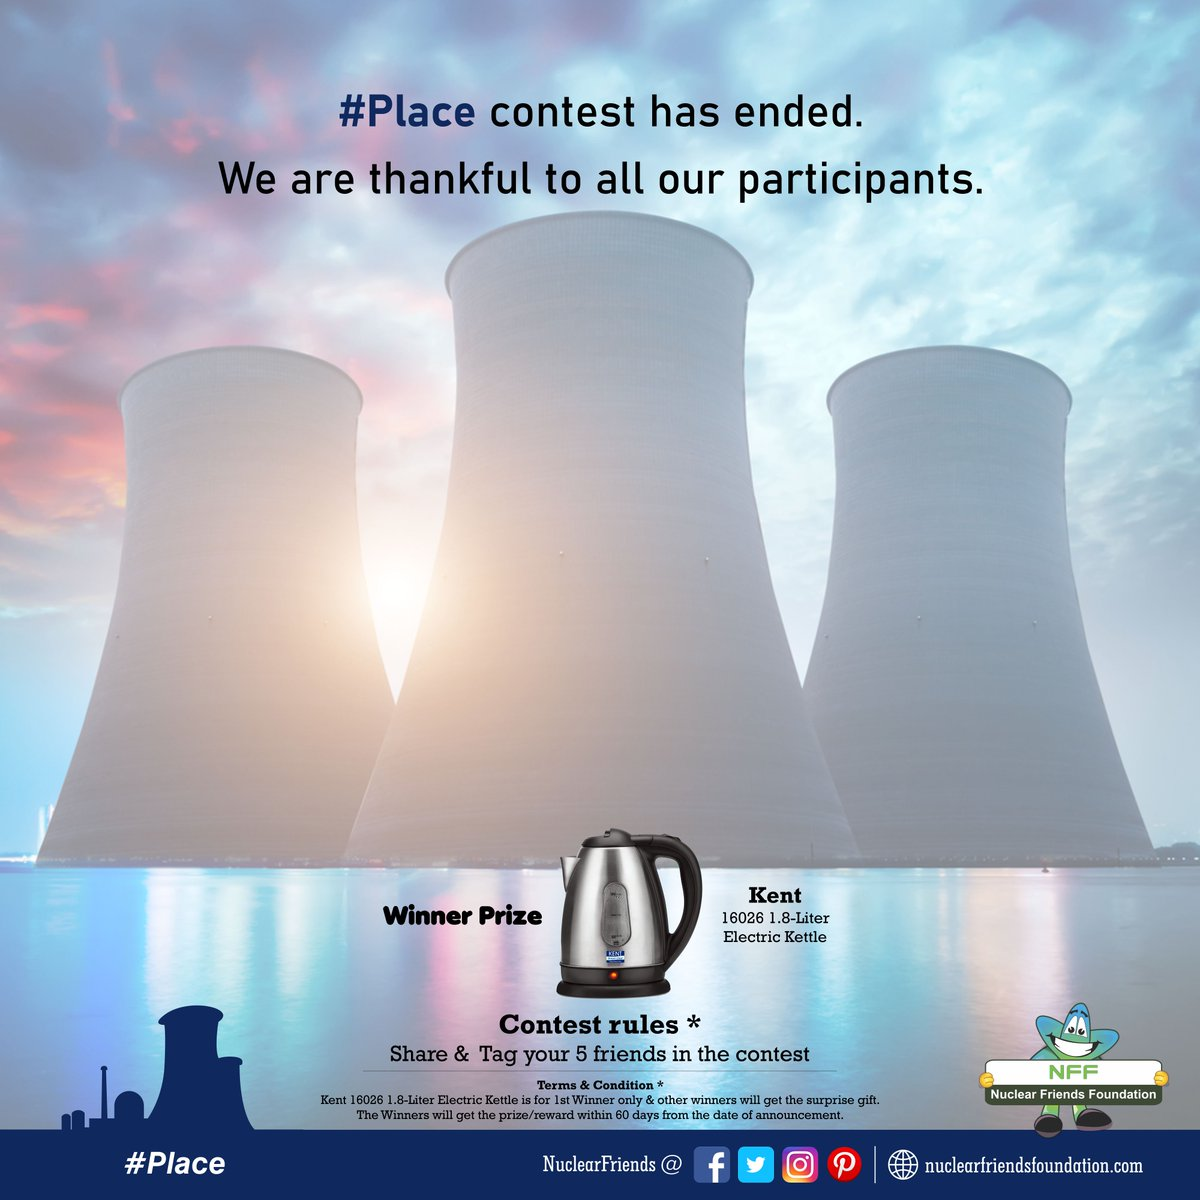 #ContestAlert #Place contest has ended. We are thankful to all our participants.  Reach us @ http://nuclearfriendsfoundation.com  #Contest #like #RT #comment #chance #Win #prizes #Today #goodluck #giveaway #competition #ContestEntry #entertowin #giveaways #WednesdayWisdom @india4contests